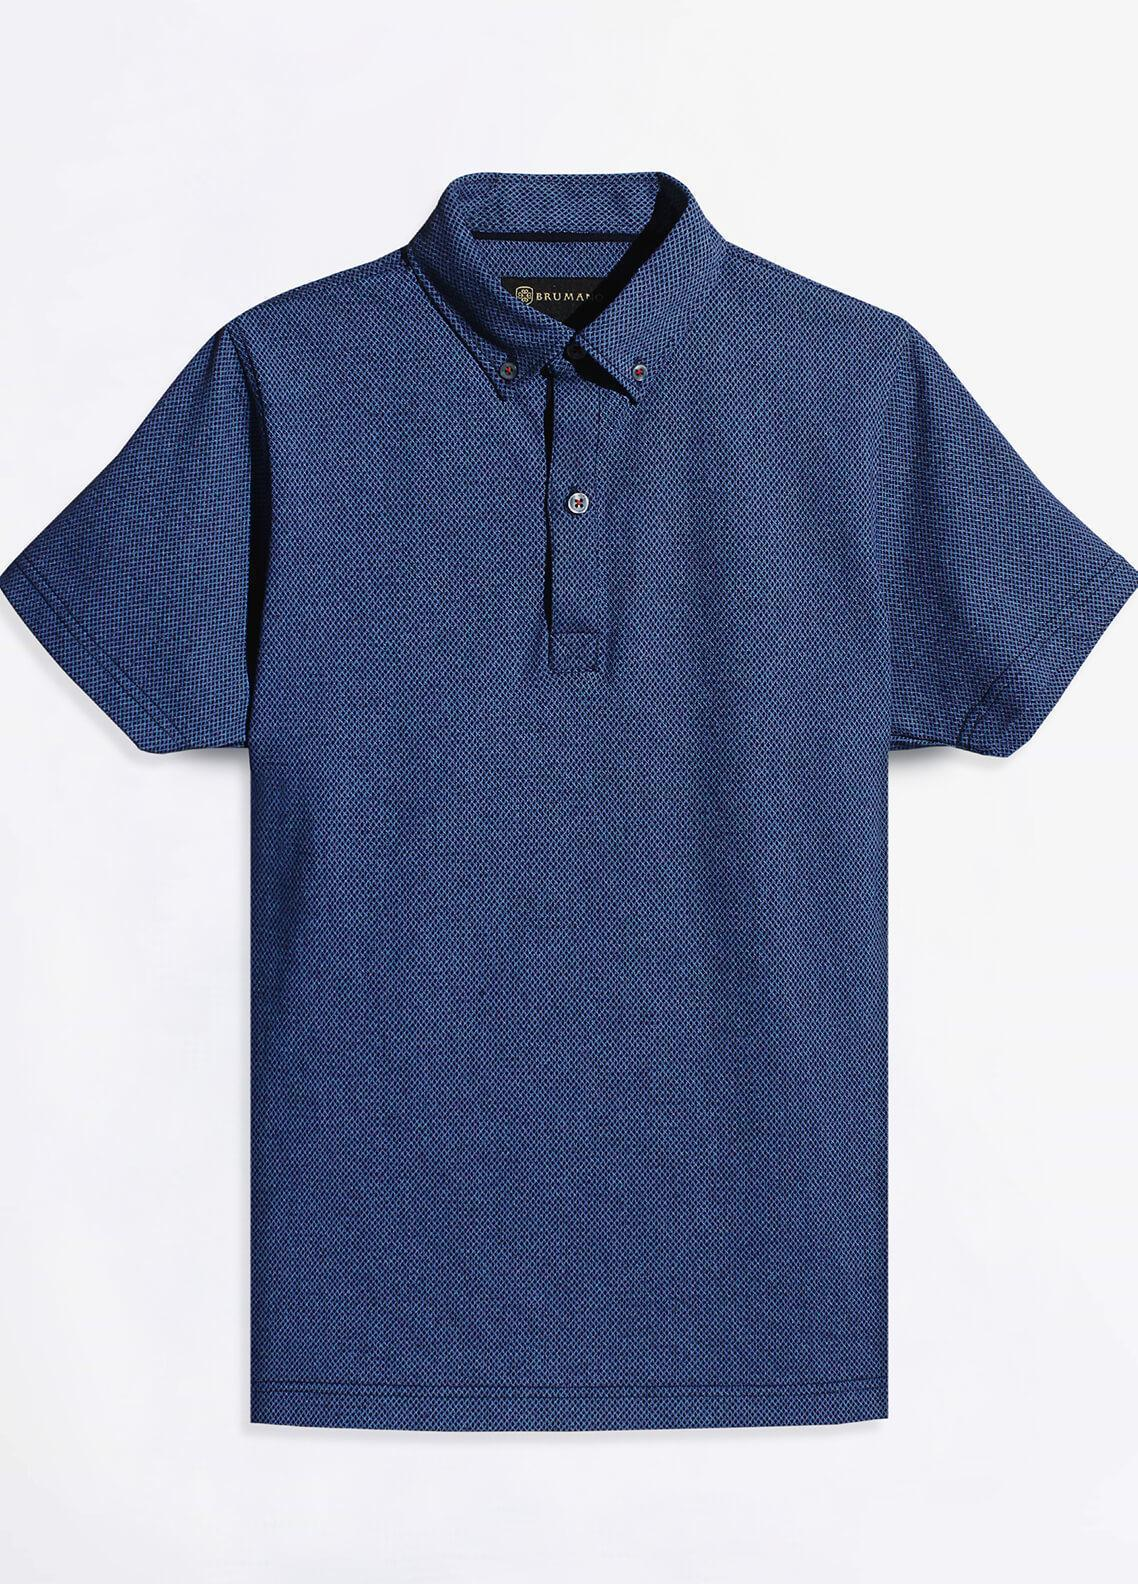 Brumano Cotton Polo Shirts for Men - Navy Blue BRM-981